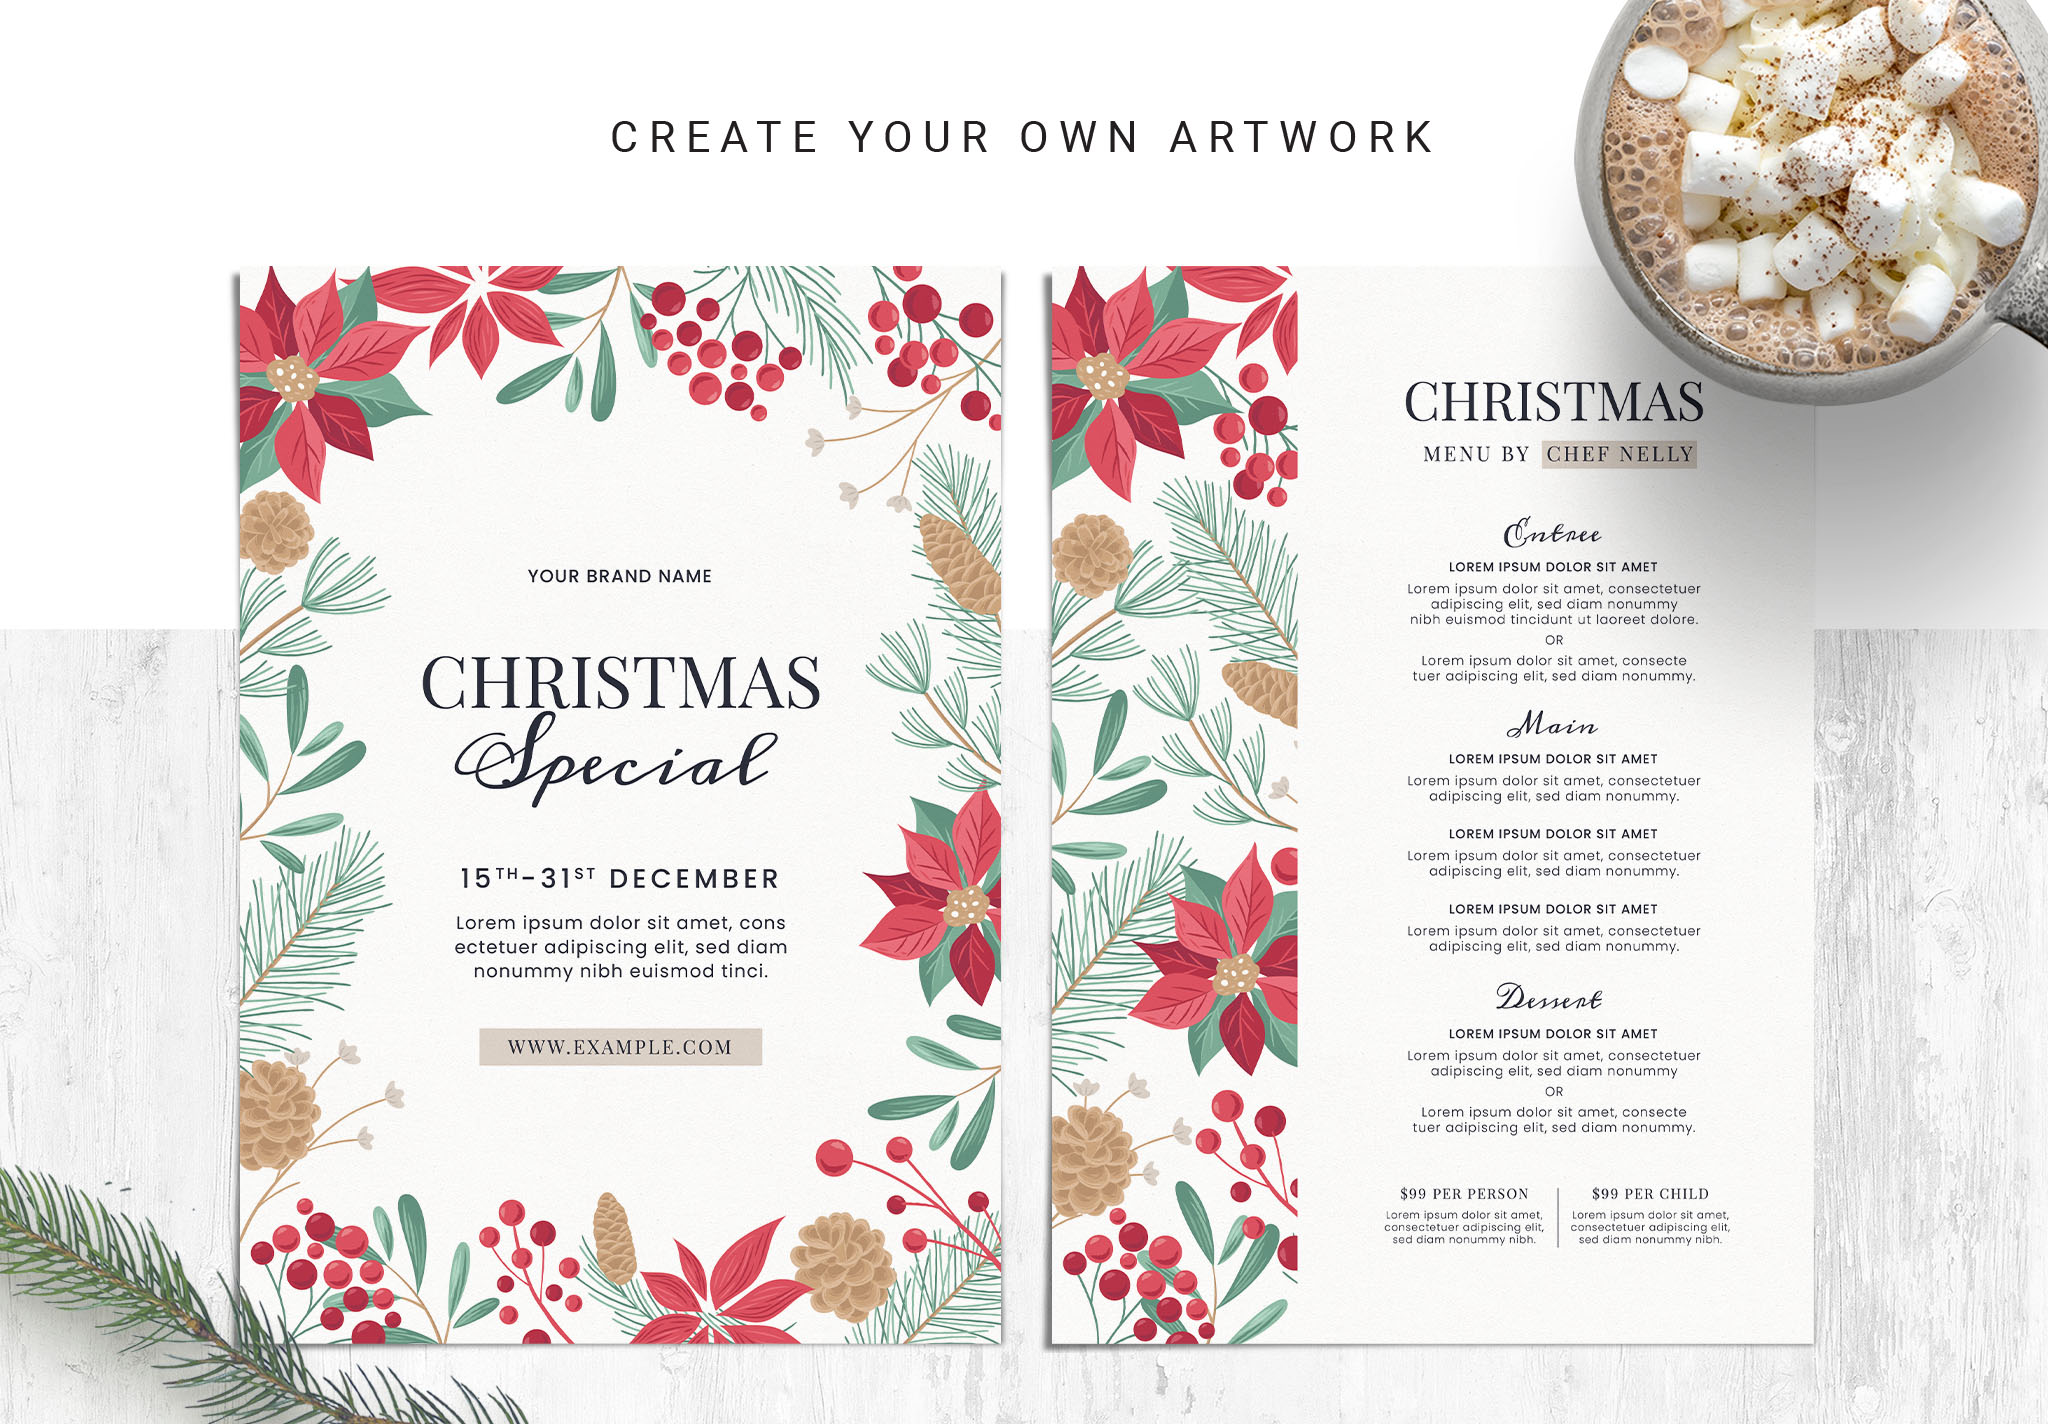 Christmas Menu Flyer Templates for Photoshop & Illustrator